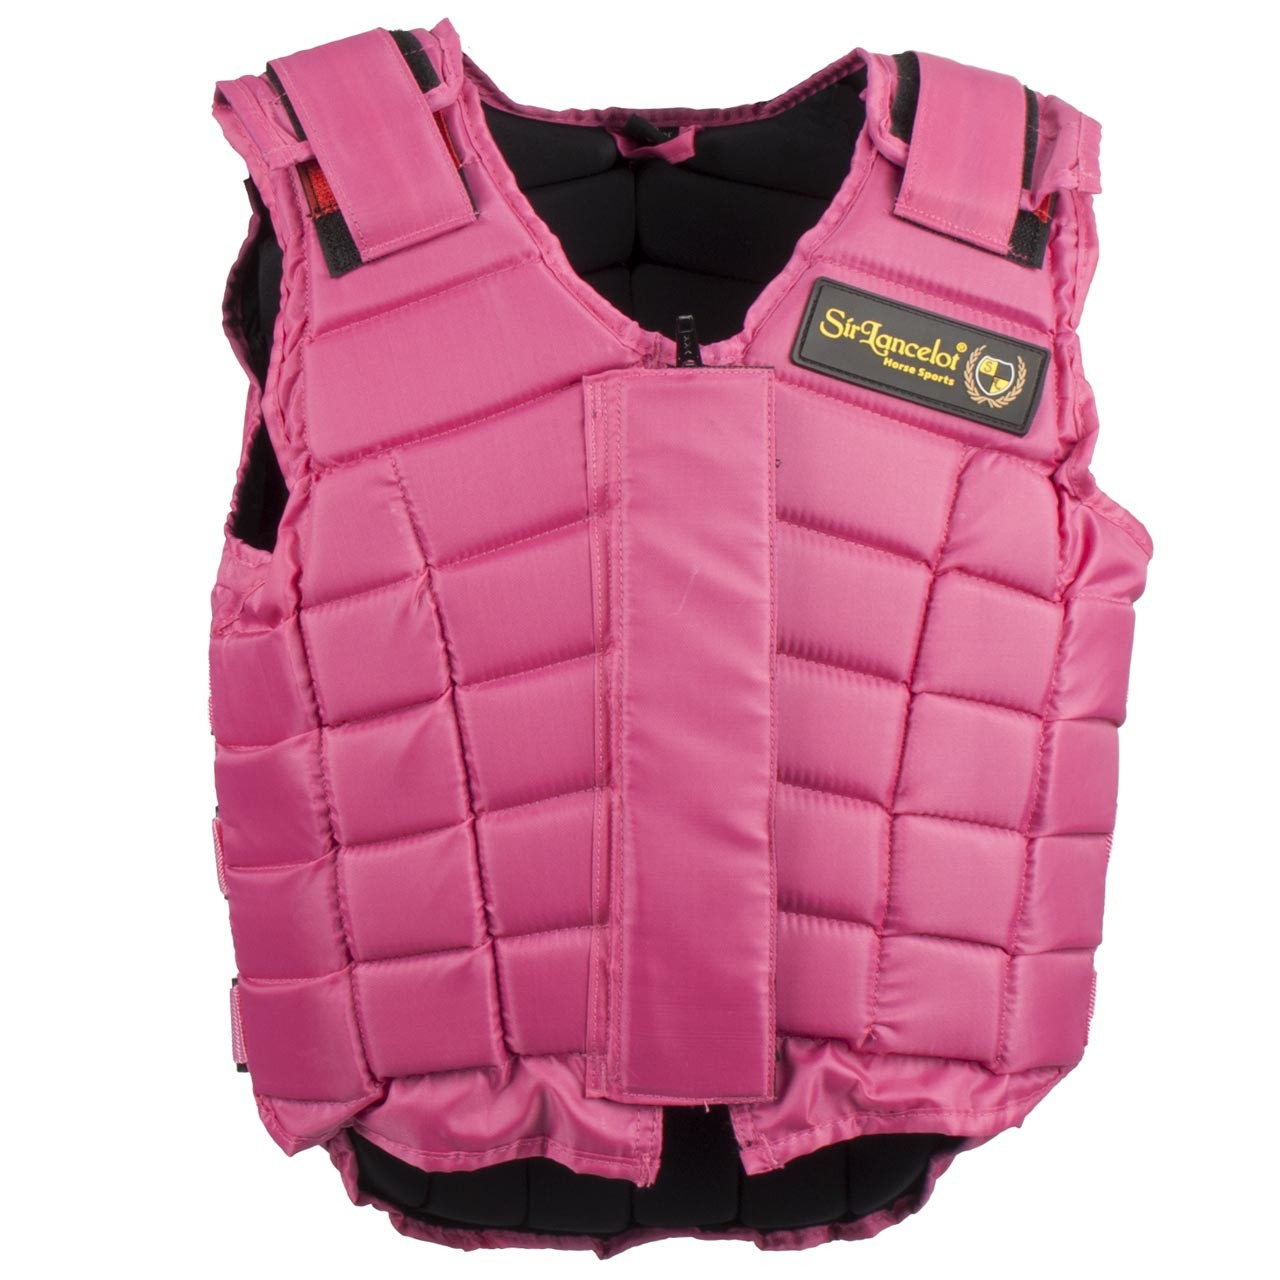 Sir Lancelot 8 Point kinder Bodyprotector fuchsia maat:10